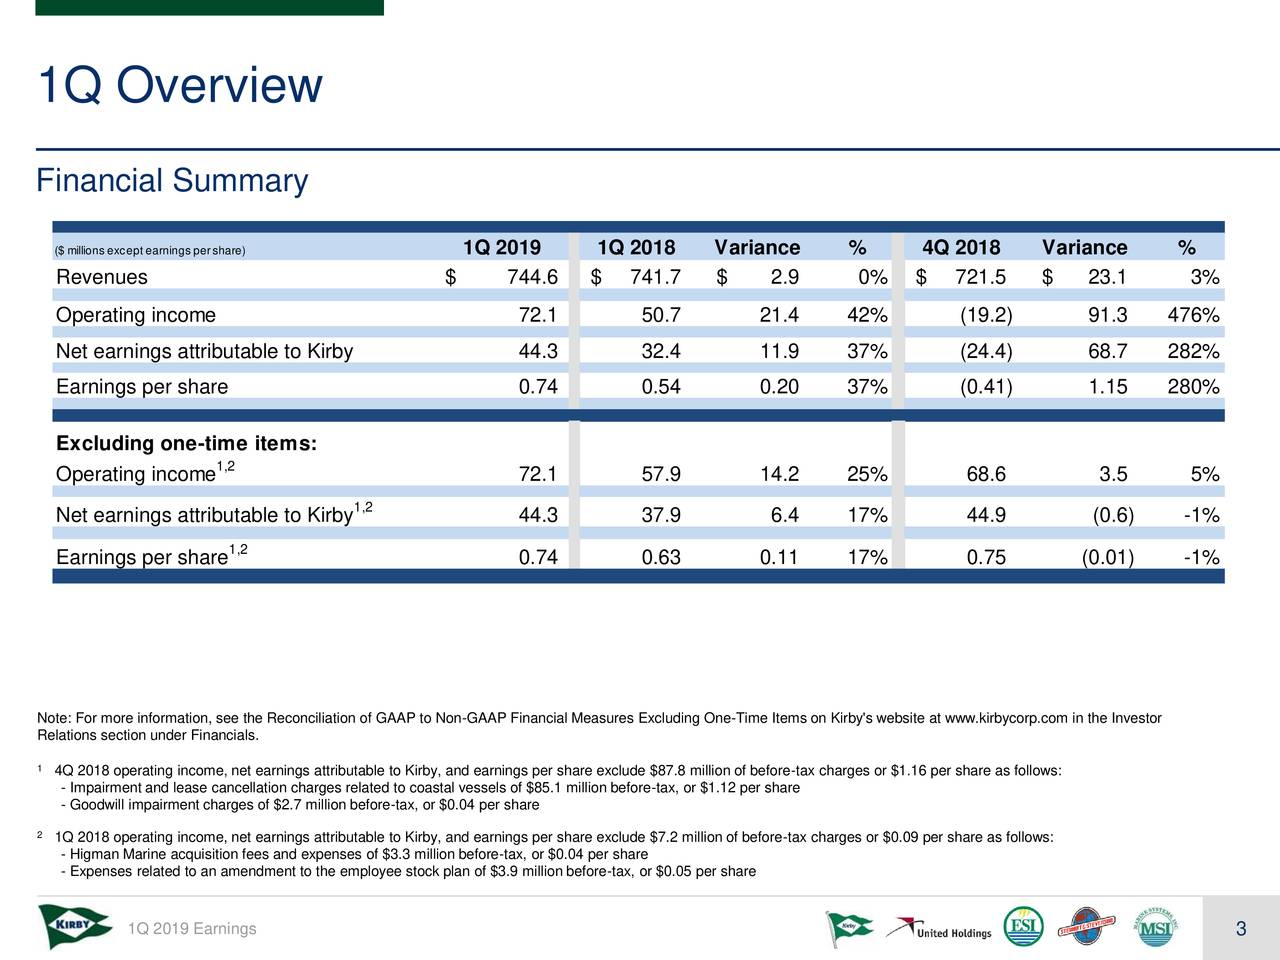 Financial Summary ($ millions except earnings pershare) 1Q 2019 1Q 2018 Variance % 4Q 2018 Variance % Revenues $ 744.6 $ 741.7 $ 2.9 0% $ 721.5 $ 23.1 3% Operating income 72.1 50.7 21.4 42% (19.2) 91.3 476% Net earnings attributable to Kirby 44.3 32.4 11.9 37% (24.4) 68.7 282% Earnings per share 0.74 0.54 0.20 37% (0.41) 1.15 280% Excluding one-time items: Operating income1,2 72.1 57.9 14.2 25% 68.6 3.5 5% Net earnings attributable to Kirby 44.3 37.9 6.4 17% 44.9 (0.6) -1% Earnings per share,2 0.74 0.63 0.11 17% 0.75 (0.01) -1% Note: For more information, see the Reconciliation of GAAP to Non-GAAP Financial Measures Excluding One-Time Items on Kirby's website at www.kirbycorp.com in the Investor Relations section under Financials. 1 4Q 2018 operating income, net earnings attributable to Kirby, and earnings per share exclude $87.8 million of before-tax charges or $1.16 per share as follows: - Impairment and lease cancellation charges related to coastal vessels of $85.1 million before-tax, or $1.12 per share - Goodwill impairment charges of $2.7 million before-tax, or $0.04 per share 2 1Q 2018 operating income, net earnings attributable to Kirby, and earnings per share exclude $7.2 million of before-tax charges or $0.09 per share as follows: - Higman Marine acquisition fees and expenses of $3.3 million before-tax, or $0.04 per share - Expenses related to an amendment to the employee stock plan of $3.9 million before-tax, or $0.05 per share 1Q 2019 Earnings 3